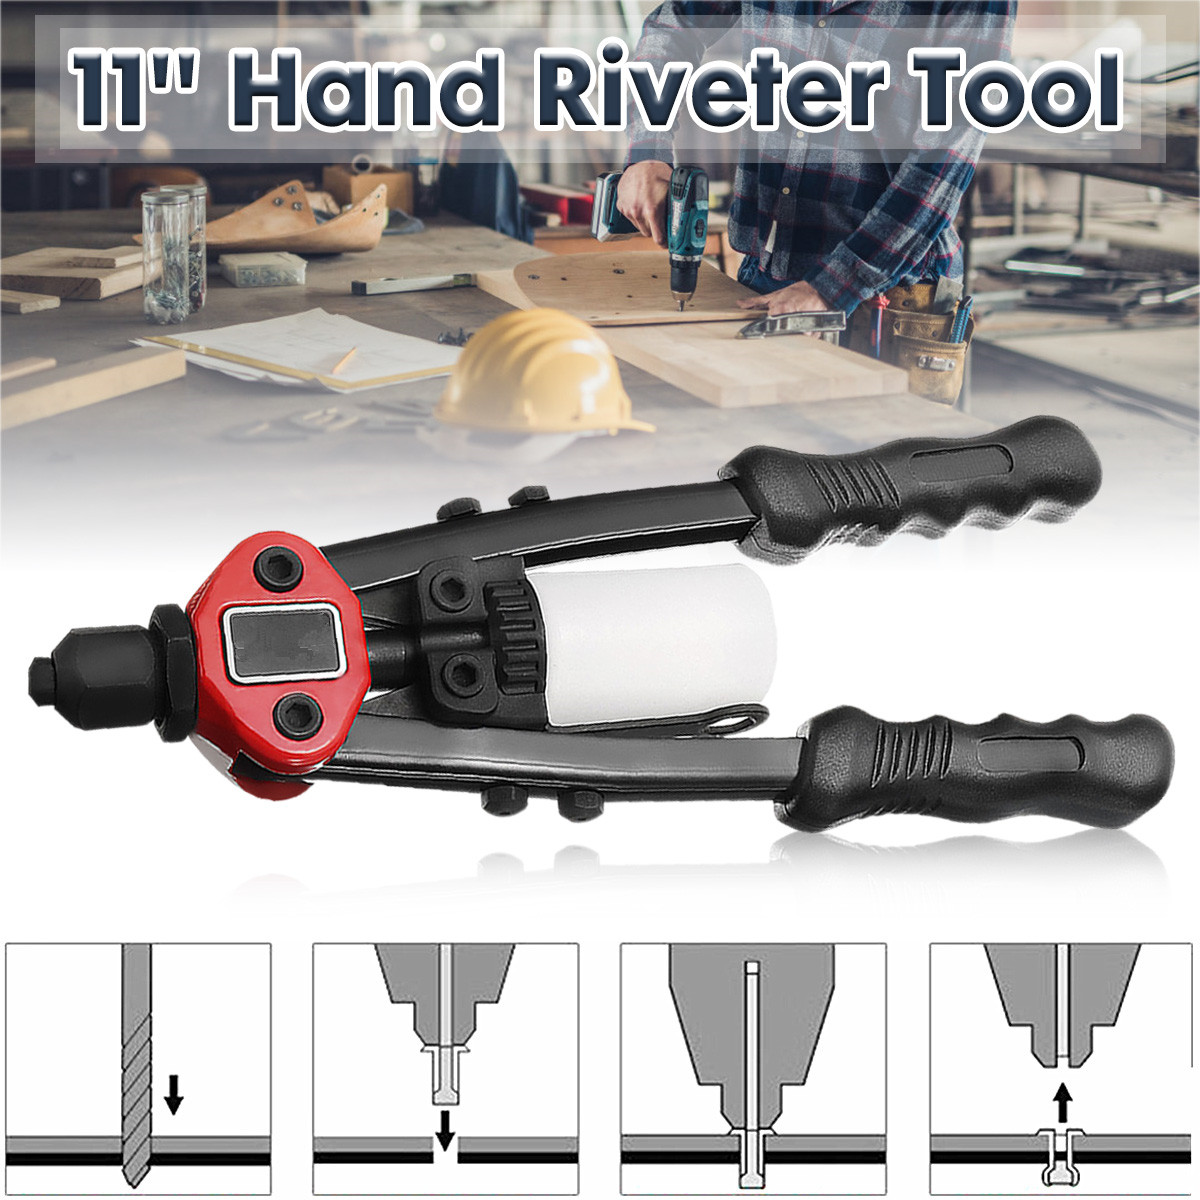 11 Inch 4 In 1 Riveter Guns Hand Riveting Kit Nuts Nail Guns Hand Riveter Tool Household Repair Tools Powers Tool